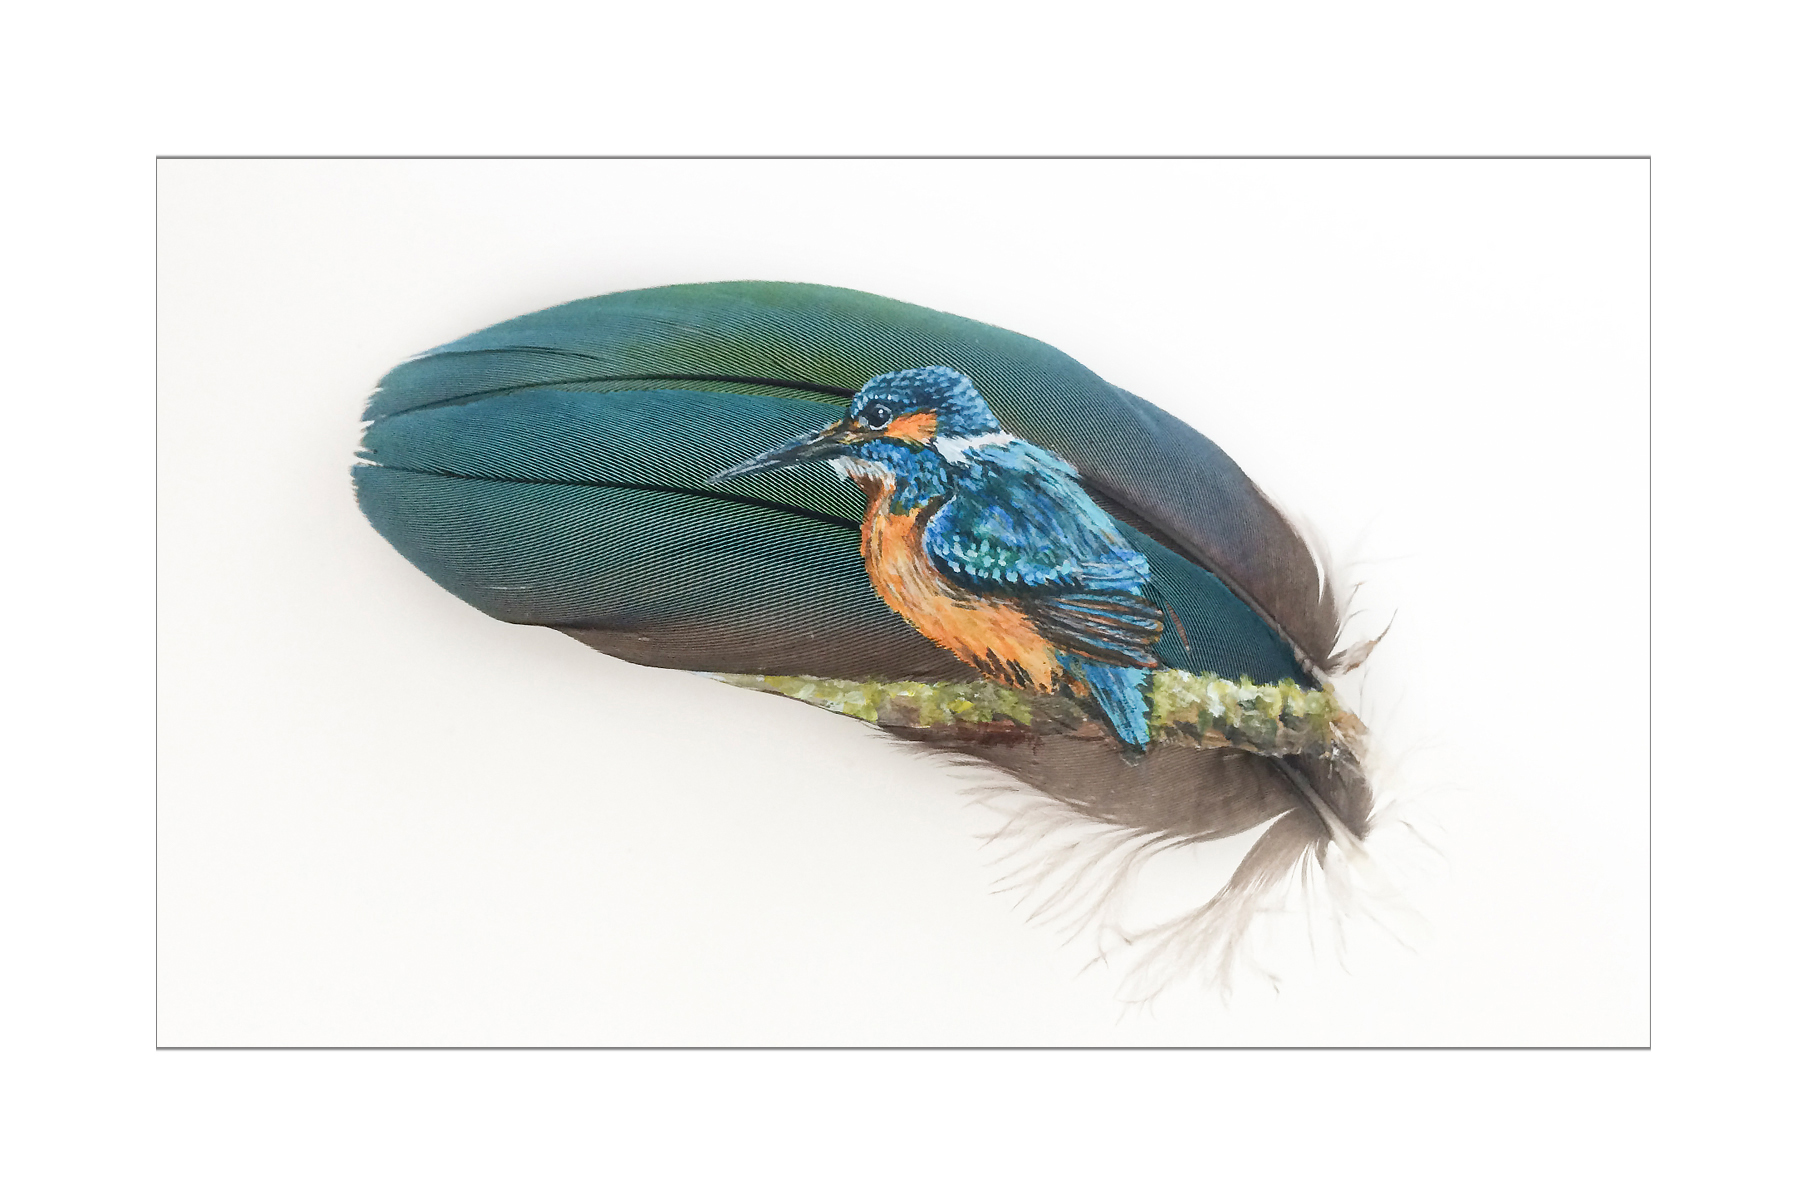 "The Brightest Blue By Mandi Baykaa-Murray - (Kingfisher on Macaw Feather) - 6"" x 8"" - £325"